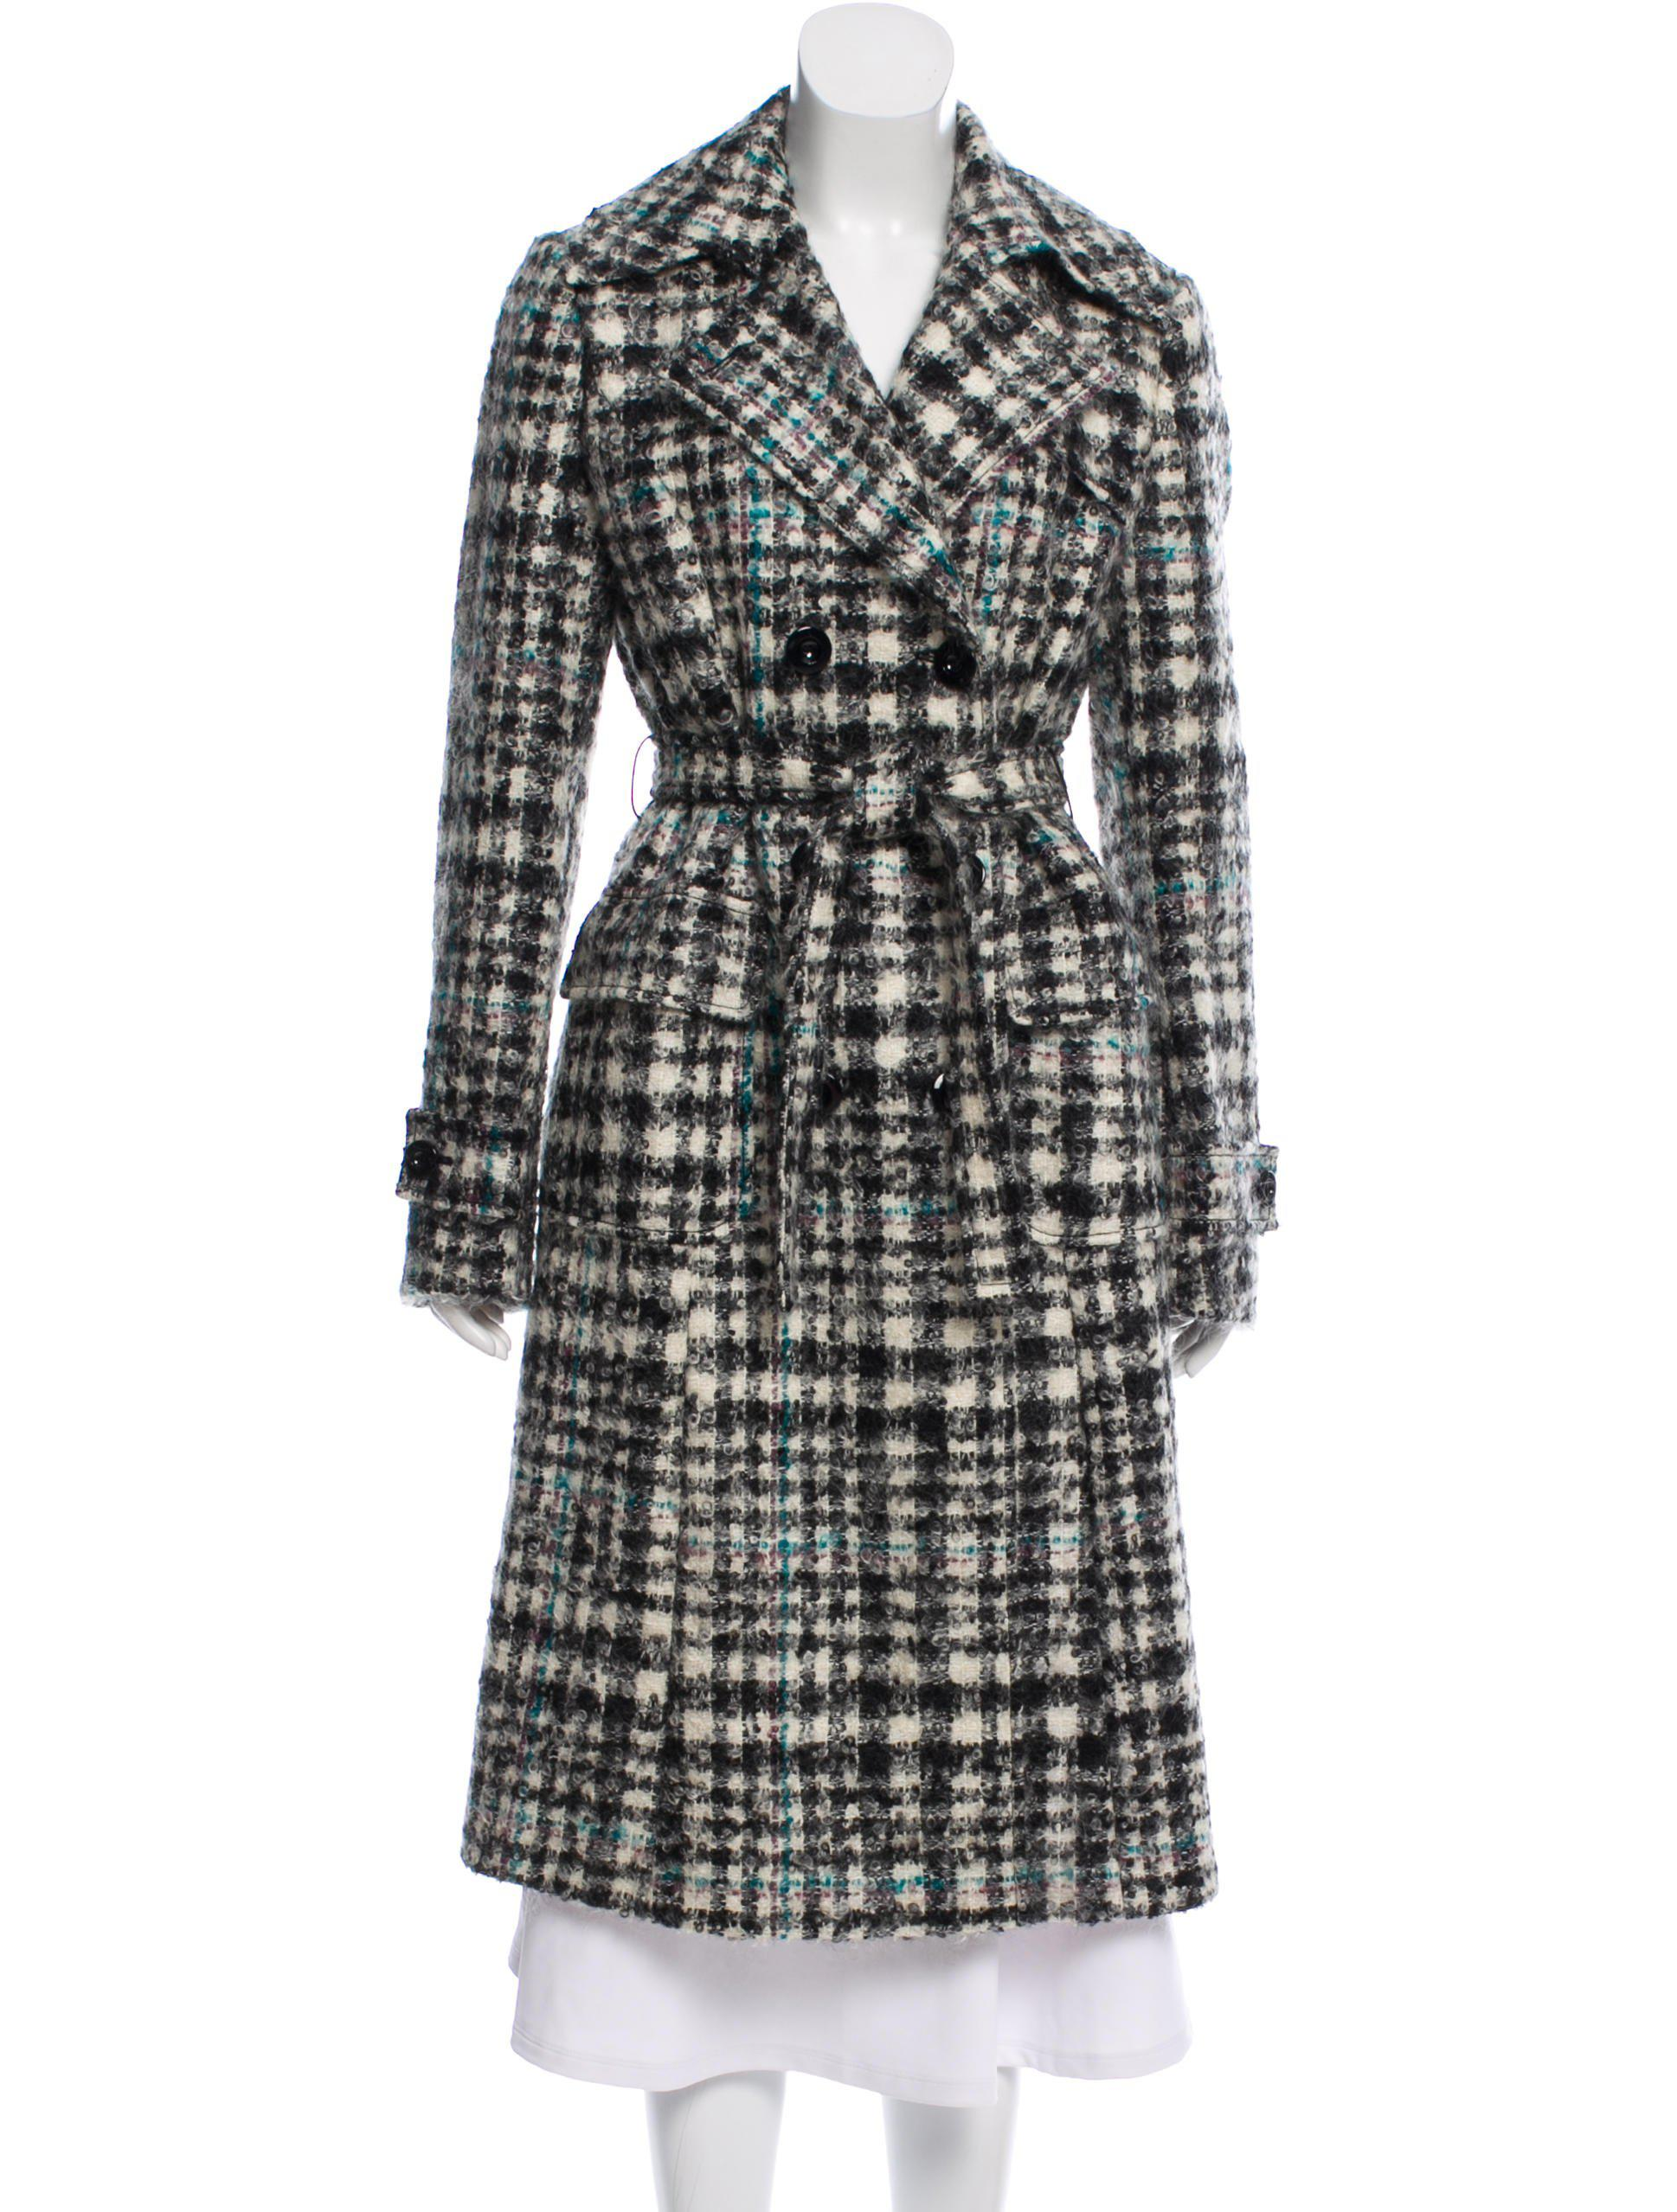 2509c57f5c21 Lyst - M Missoni Mohair Belted Coat in Black